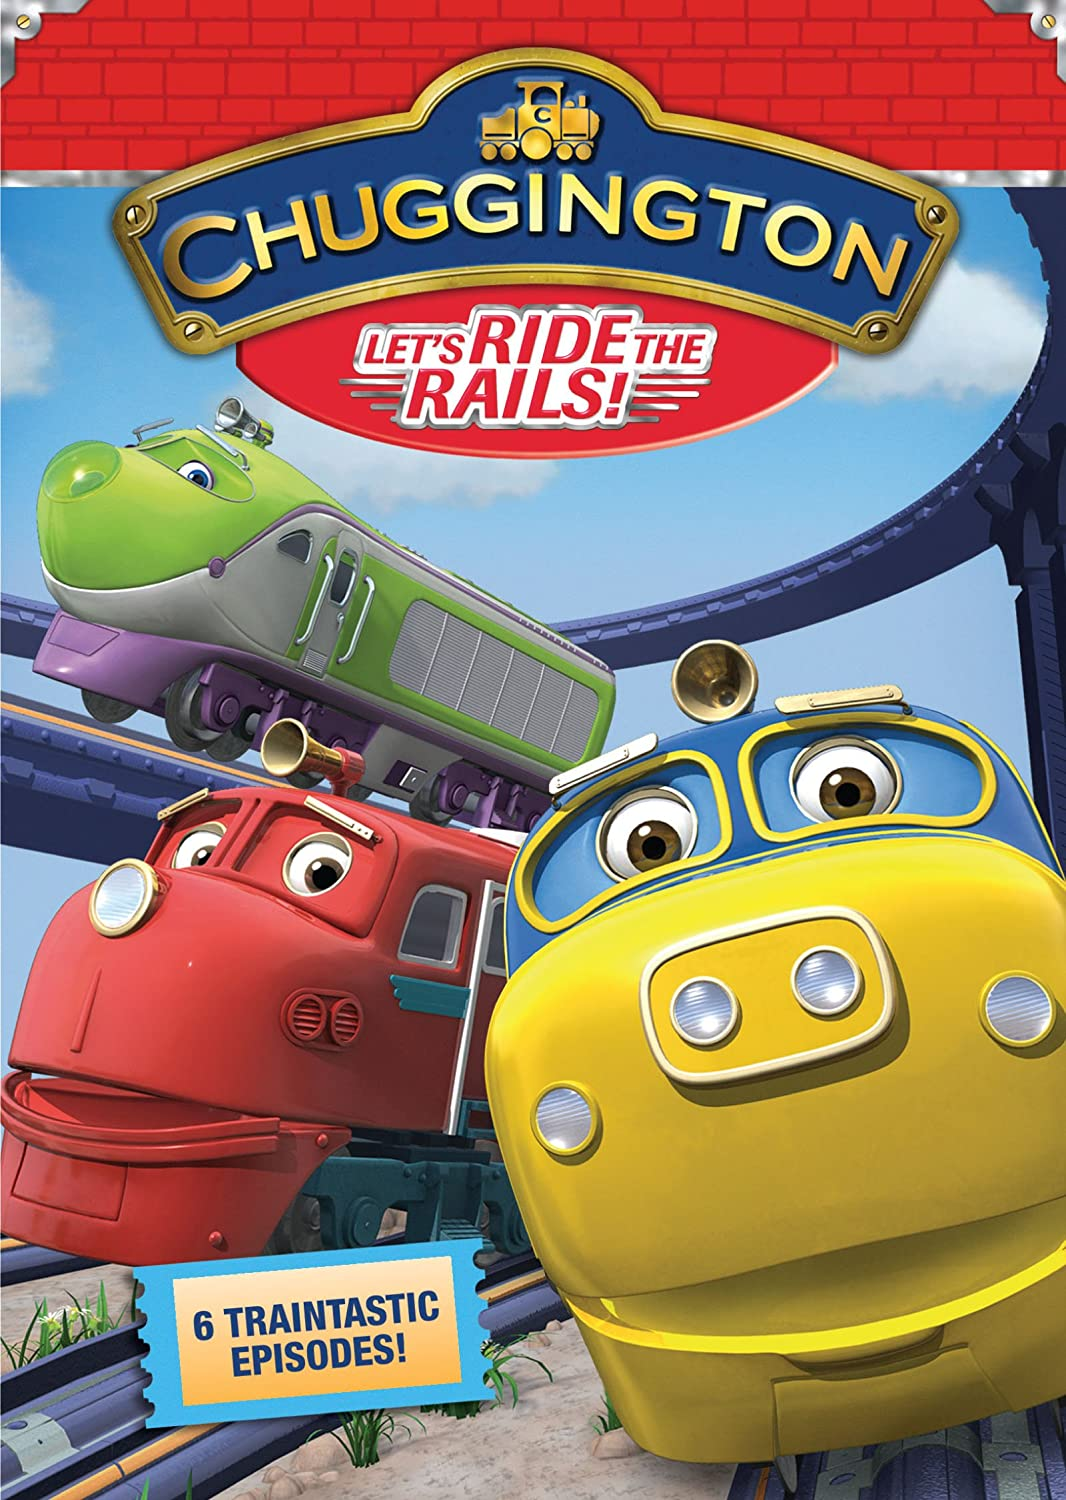 Amazoncom Chuggington Lets Ride The Rails Sarah Ball Movies TV